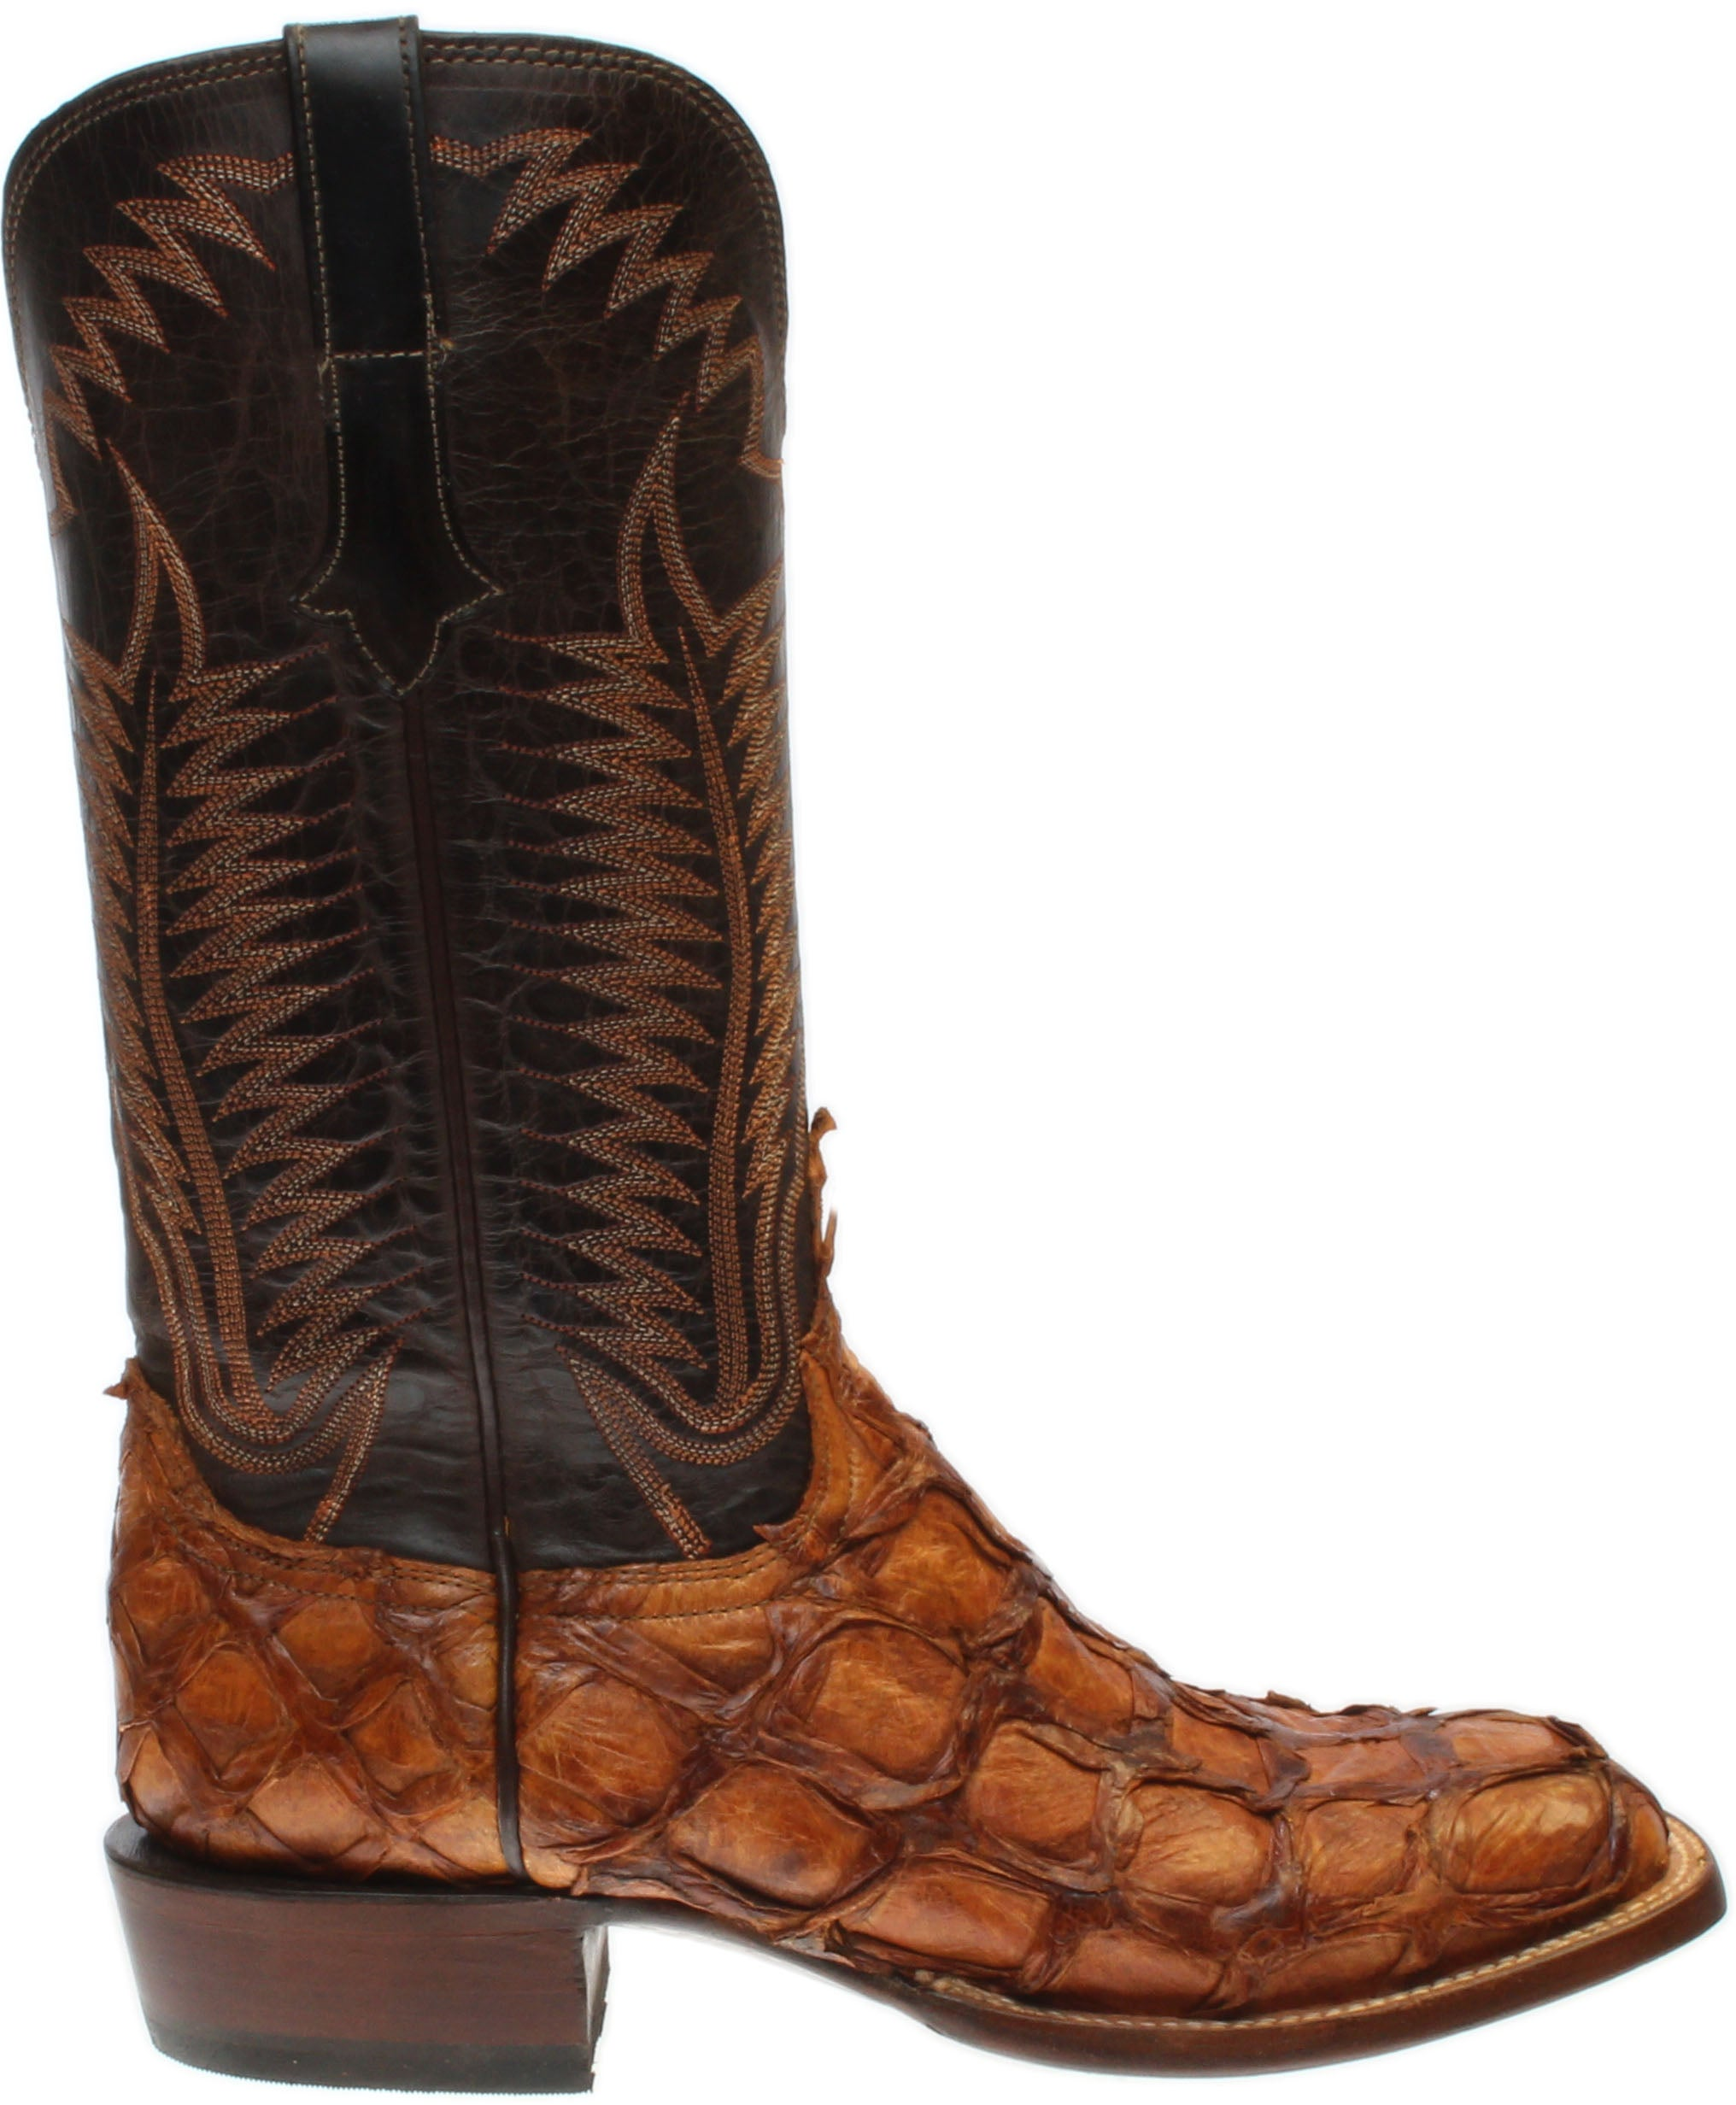 Lucchese Brooks Pirarucu and Mad Dog Goat Leather Boots